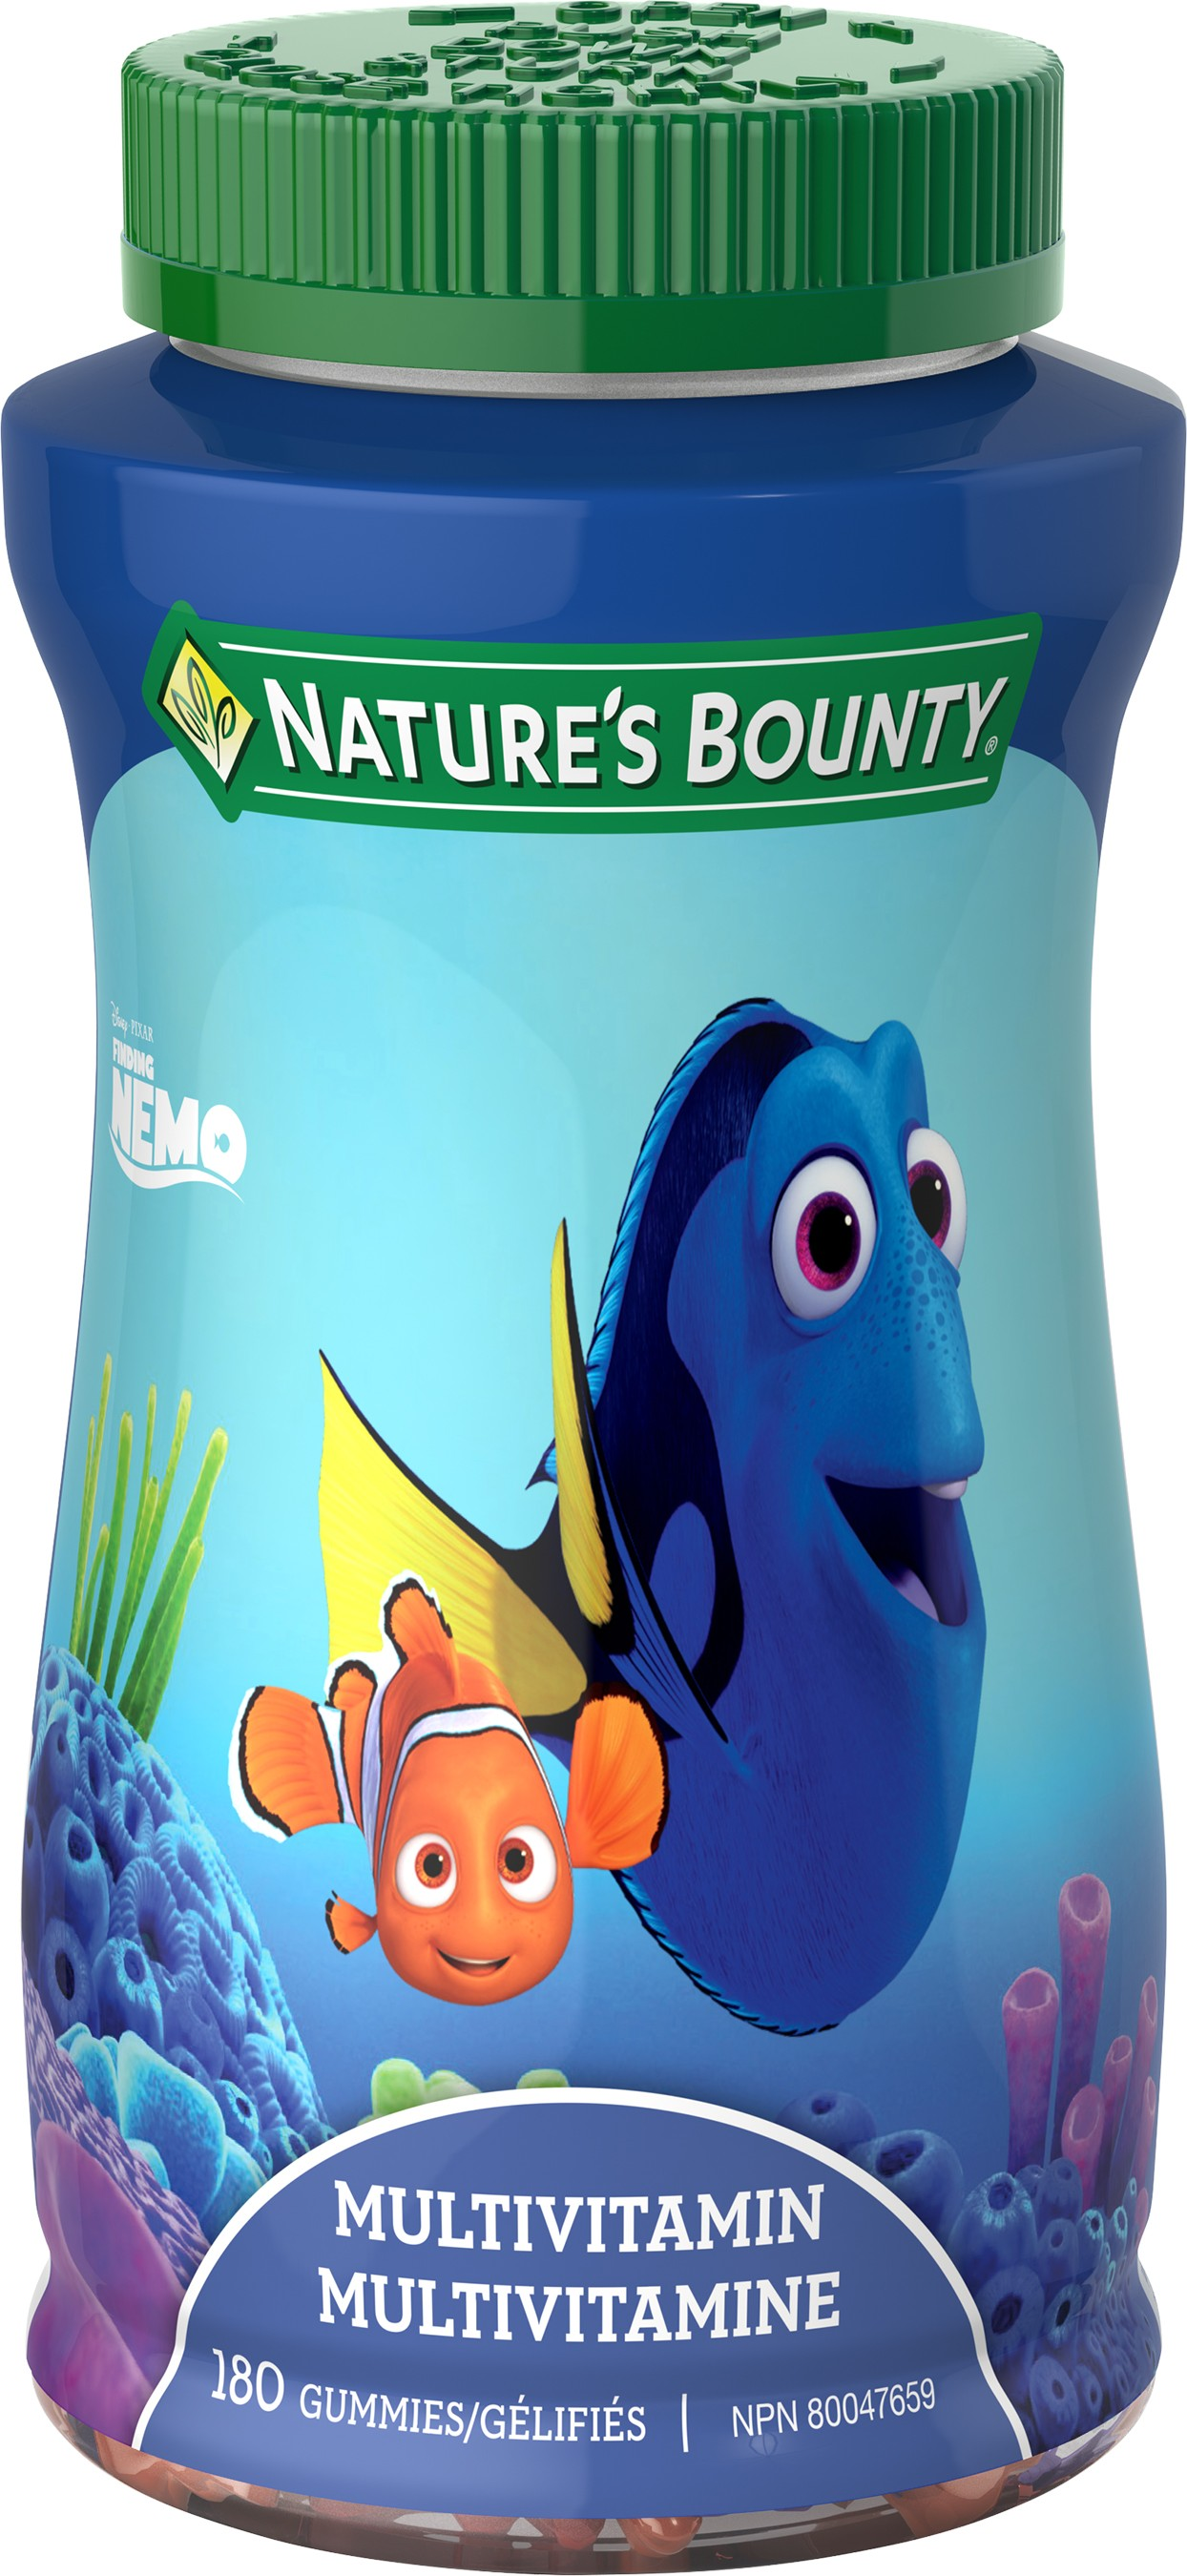 Nature's Bounty Dory Multivitamin Gummies